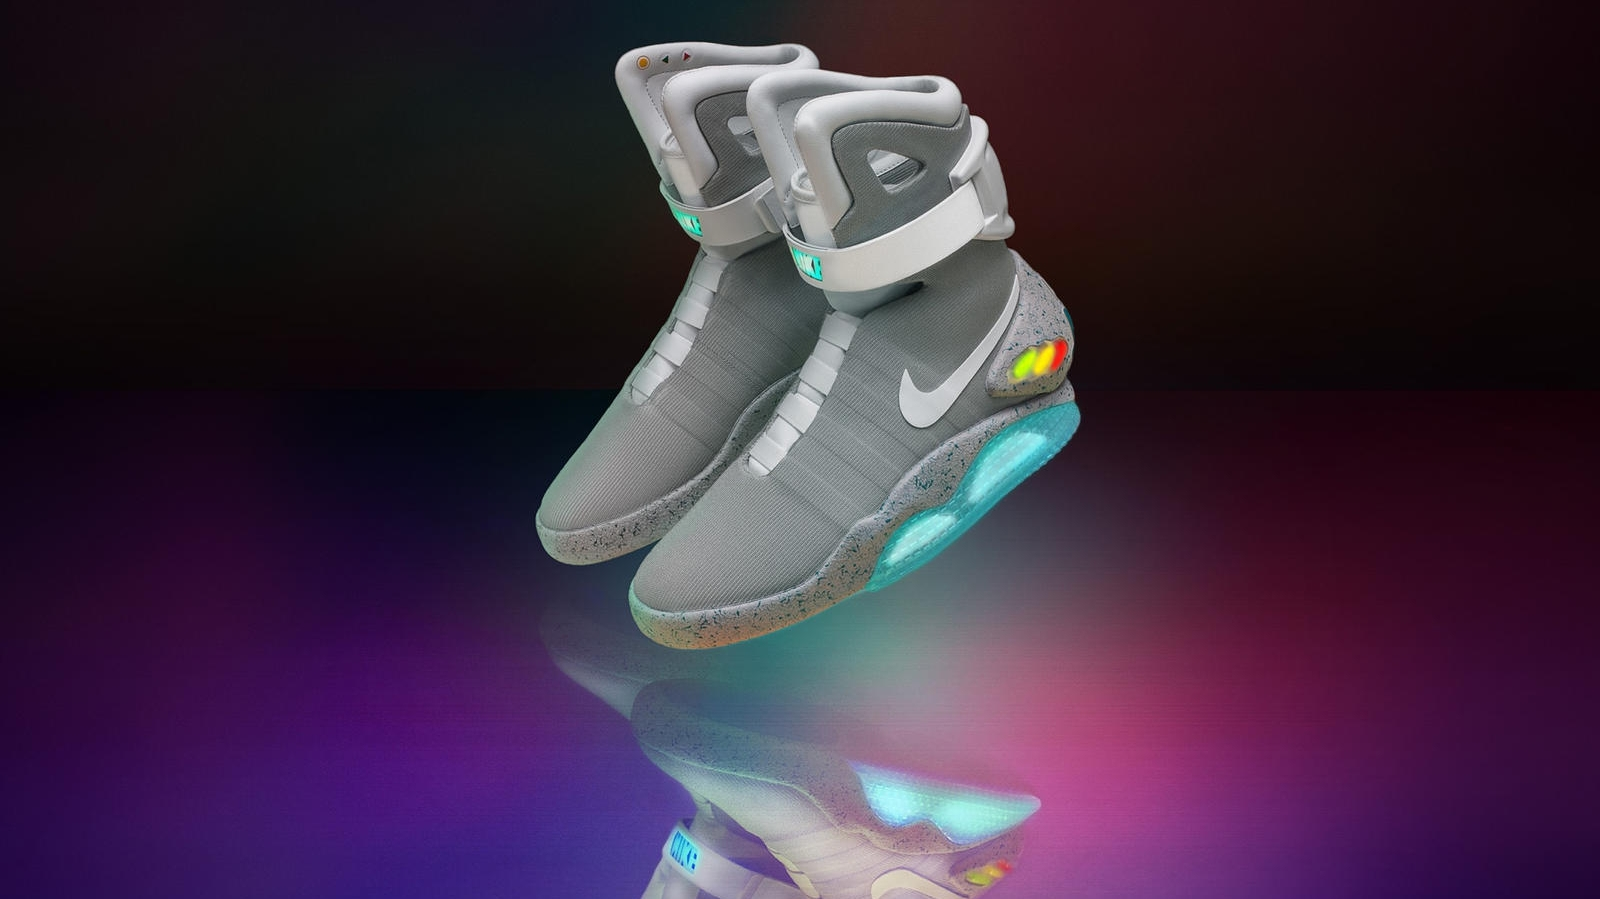 nike-mag-2016-official-01_rectangle_1600-fba73e98-9ad9-497d-8c16-0426d086bfc6